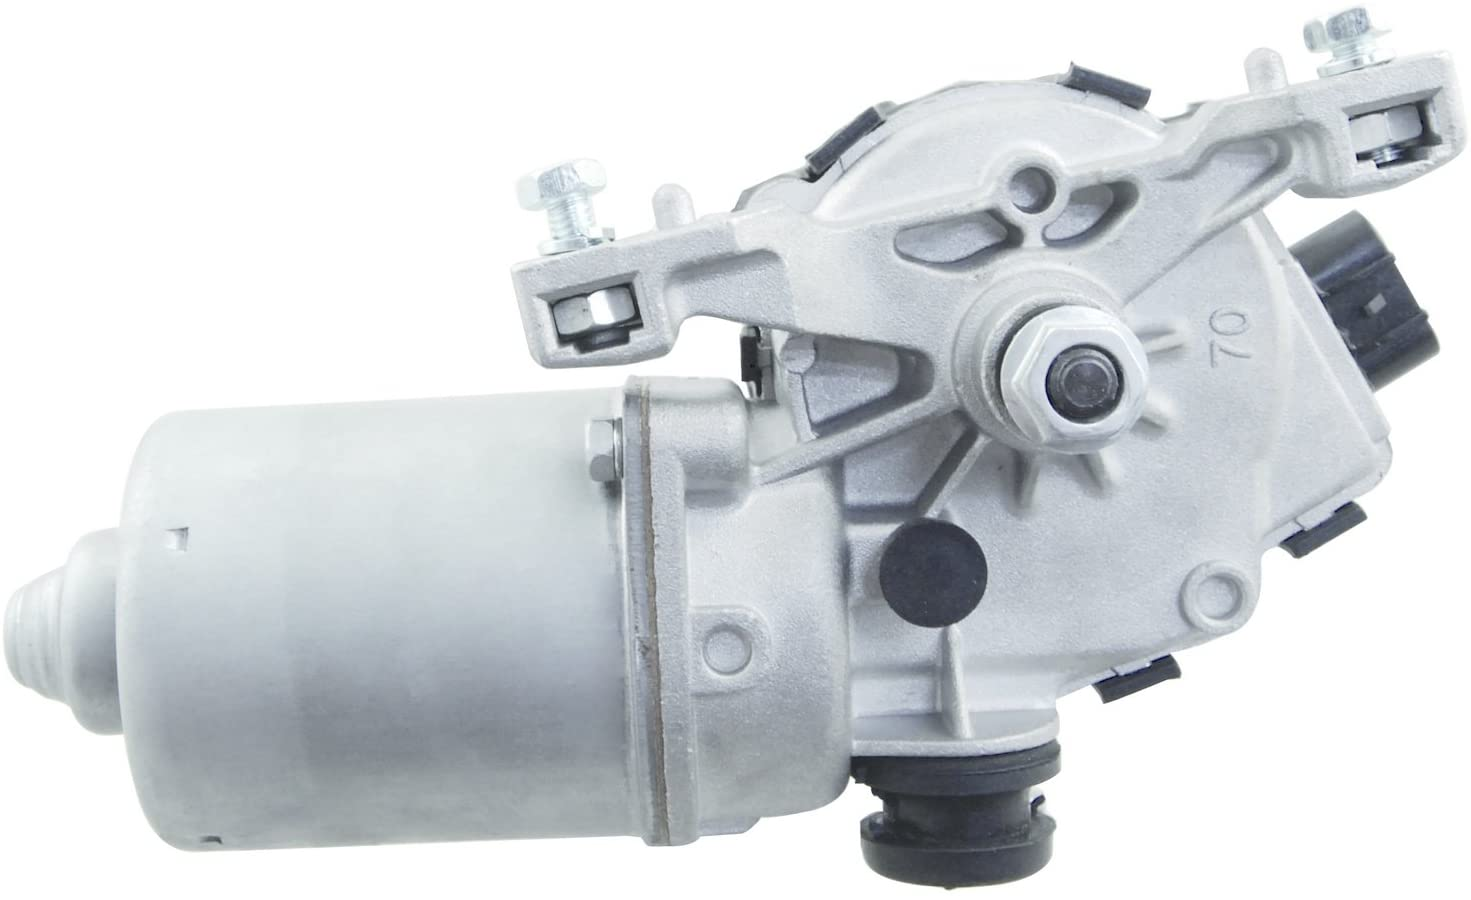 Rareelectrical NEW FRONT WIPER MOTOR COMPATIBLE WITH CHRYSLER PT CRUISER BASE CLASIC COUTURE 10389558 5175910AA